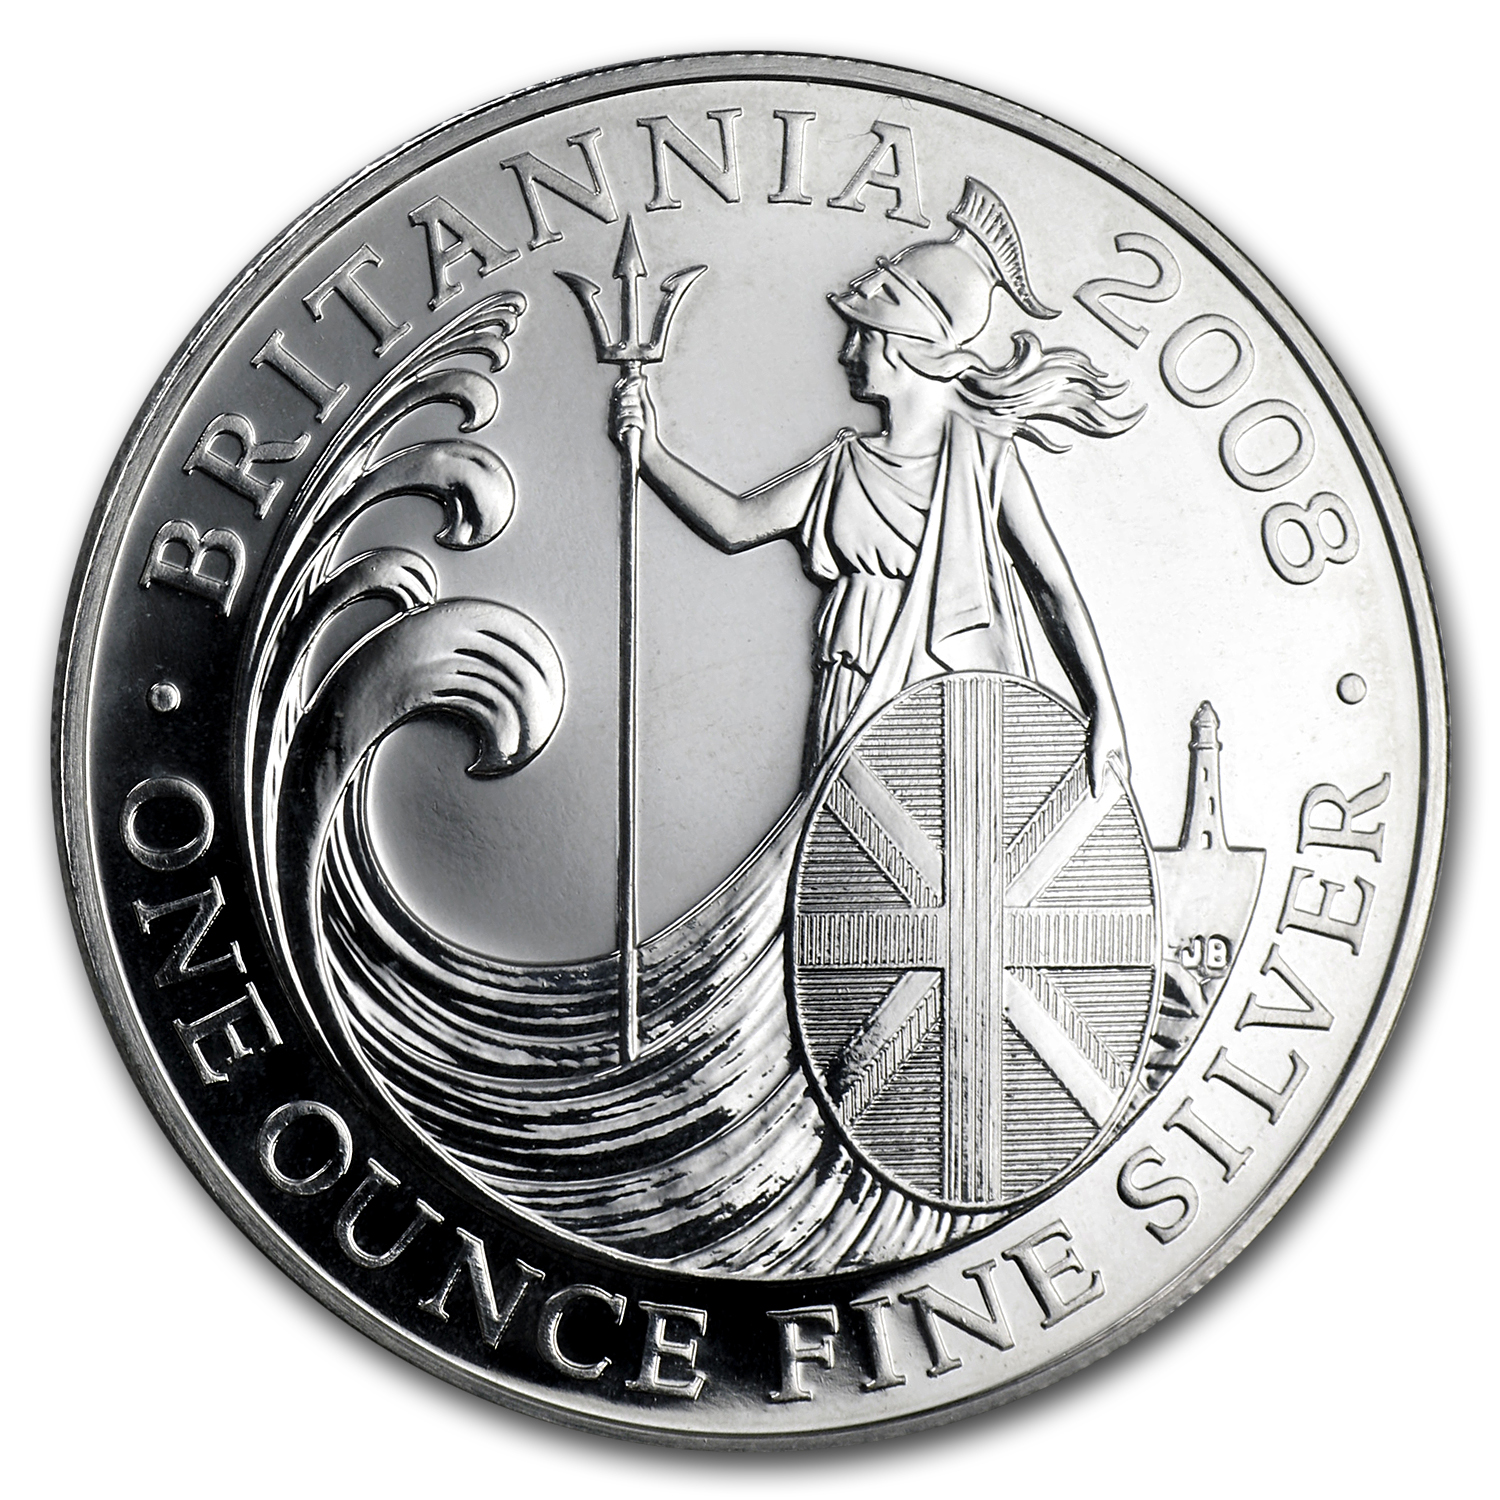 2008 1 oz Silver Britannia - Royal Mint Packaging